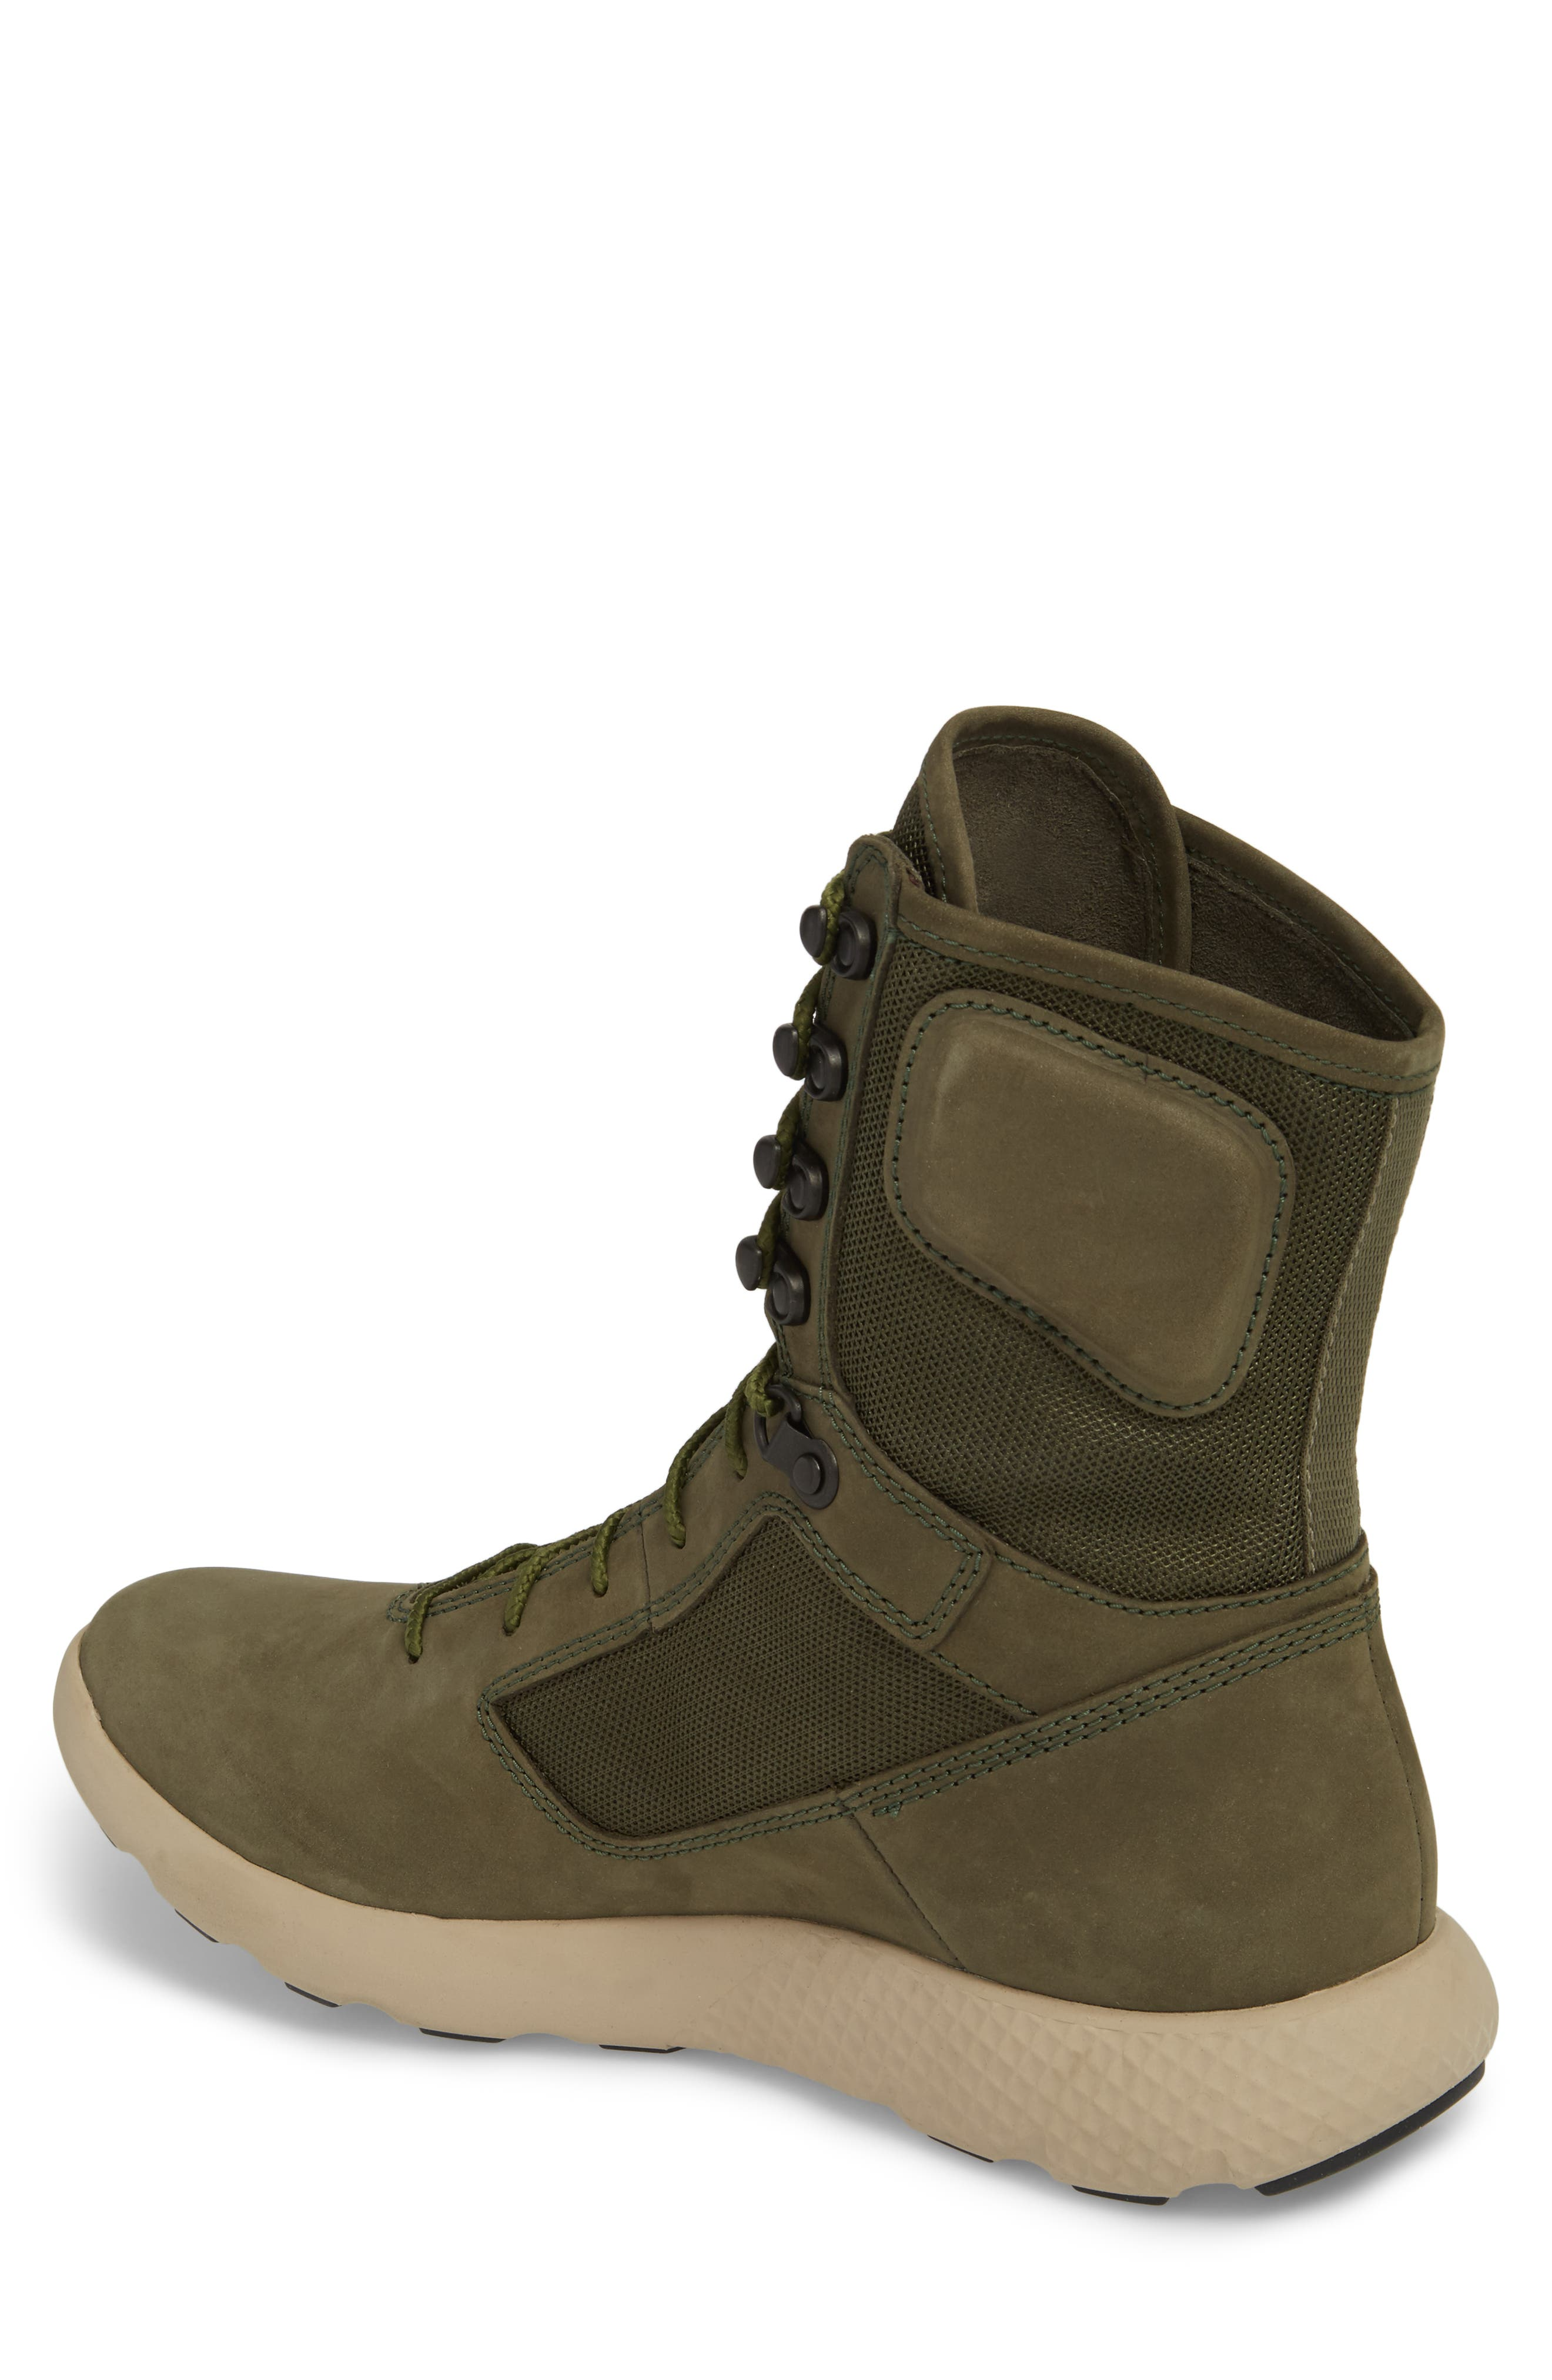 FlyRoam Tactical Boot,                             Alternate thumbnail 2, color,                             Grape Leaf Nubuck Leather